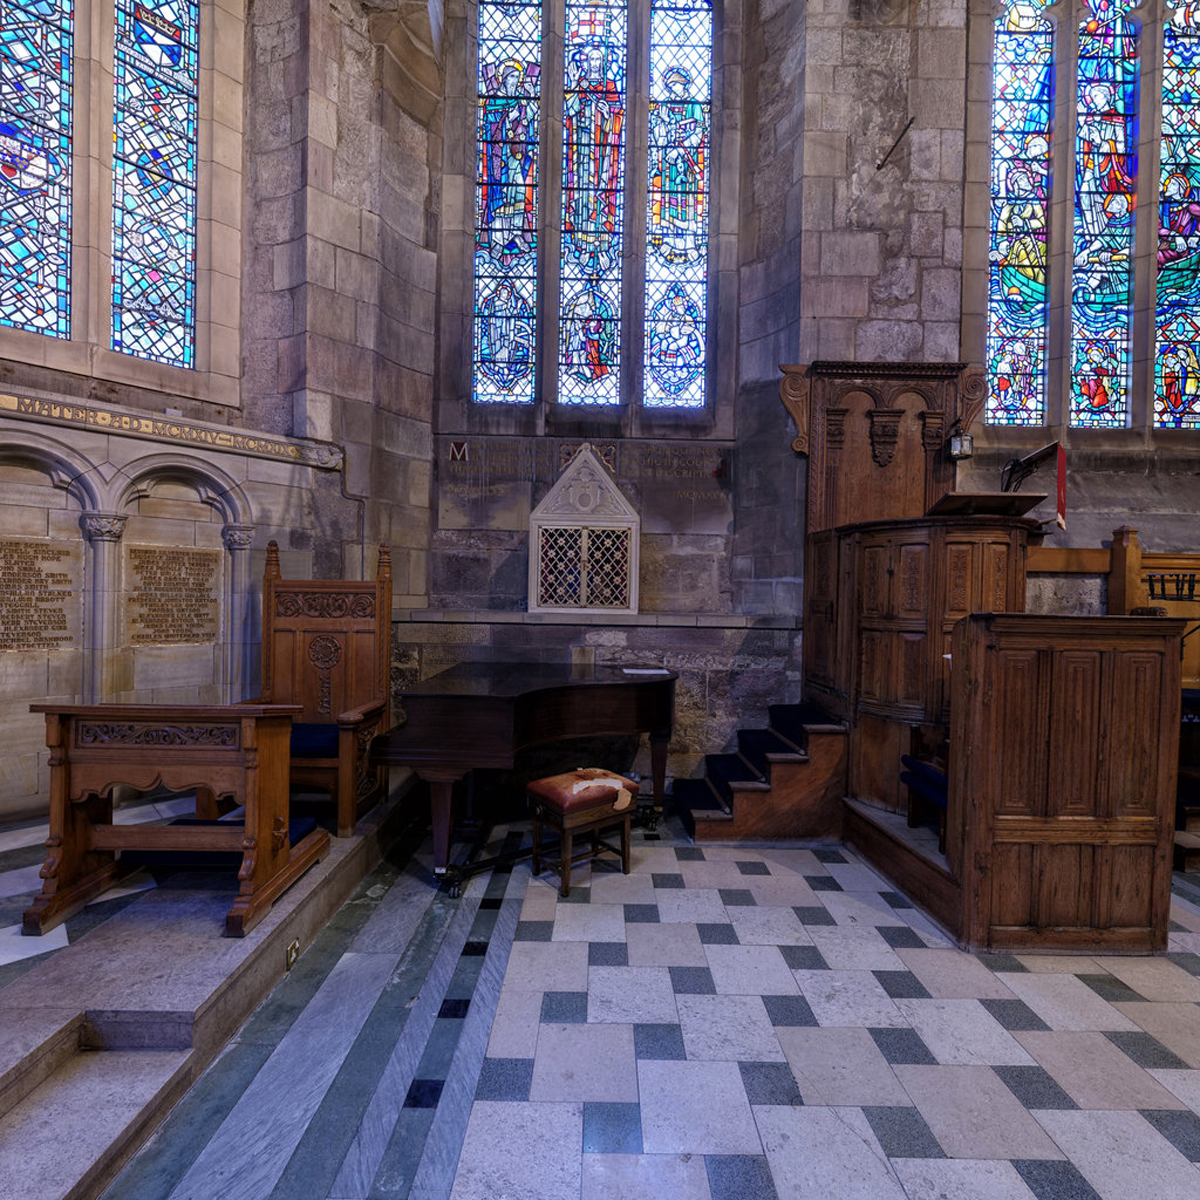 St Salvator's Chapel 3